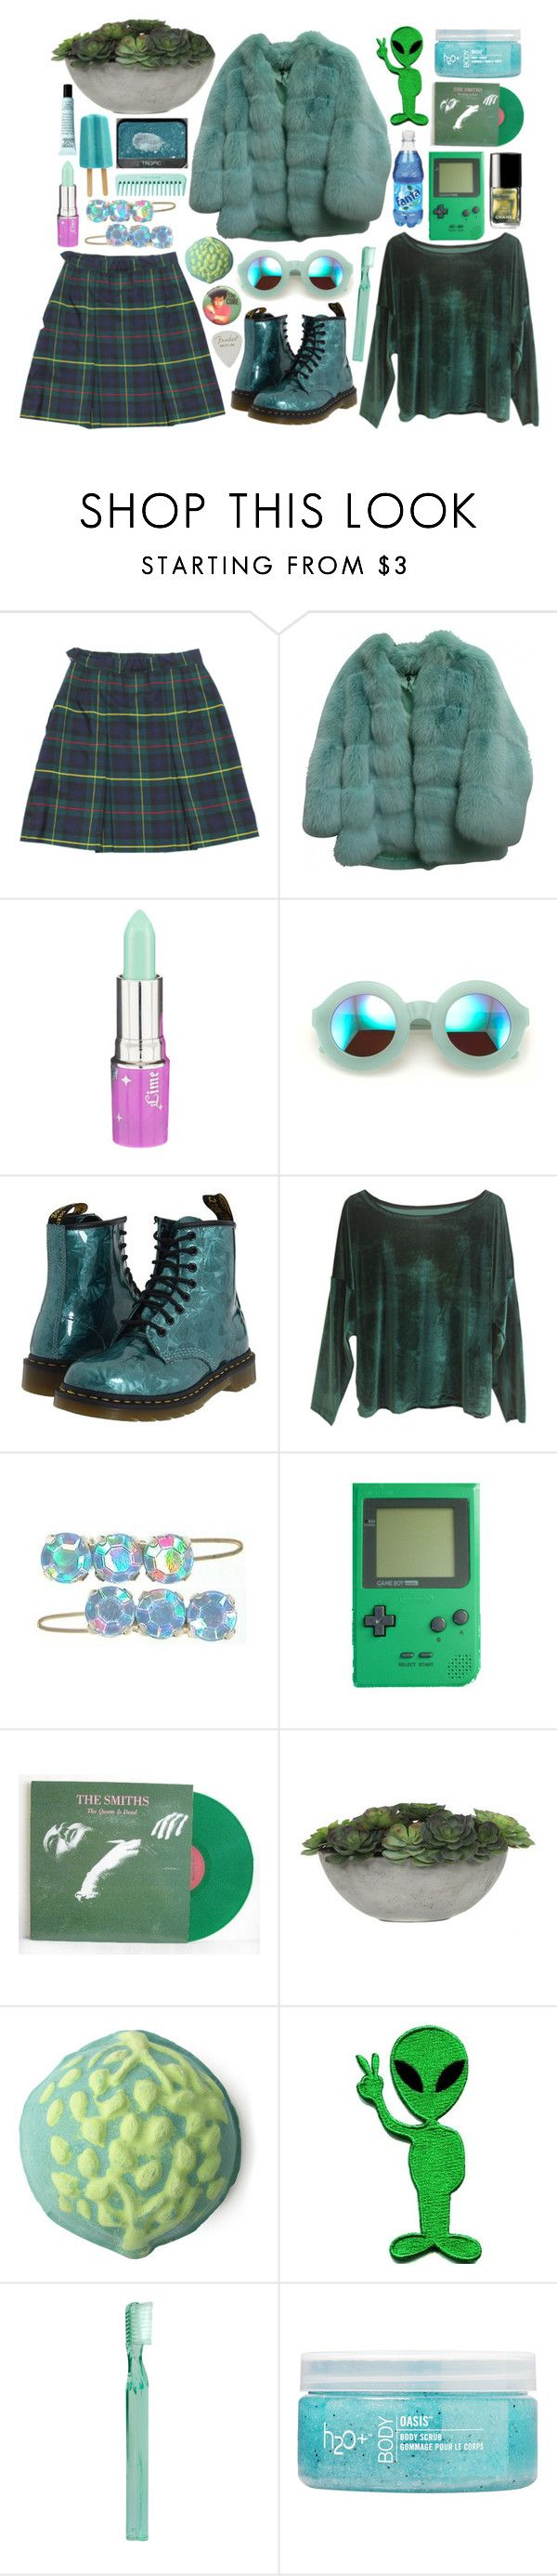 """""""Love will tear us apart"""" by emmaadv ❤ liked on Polyvore featuring Gucci, Wildfox, Dr. Martens, Chanel, Retrò, Lux-Art Silks, NARS Cosmetics, Supersmile, H2O+ and philosophy"""